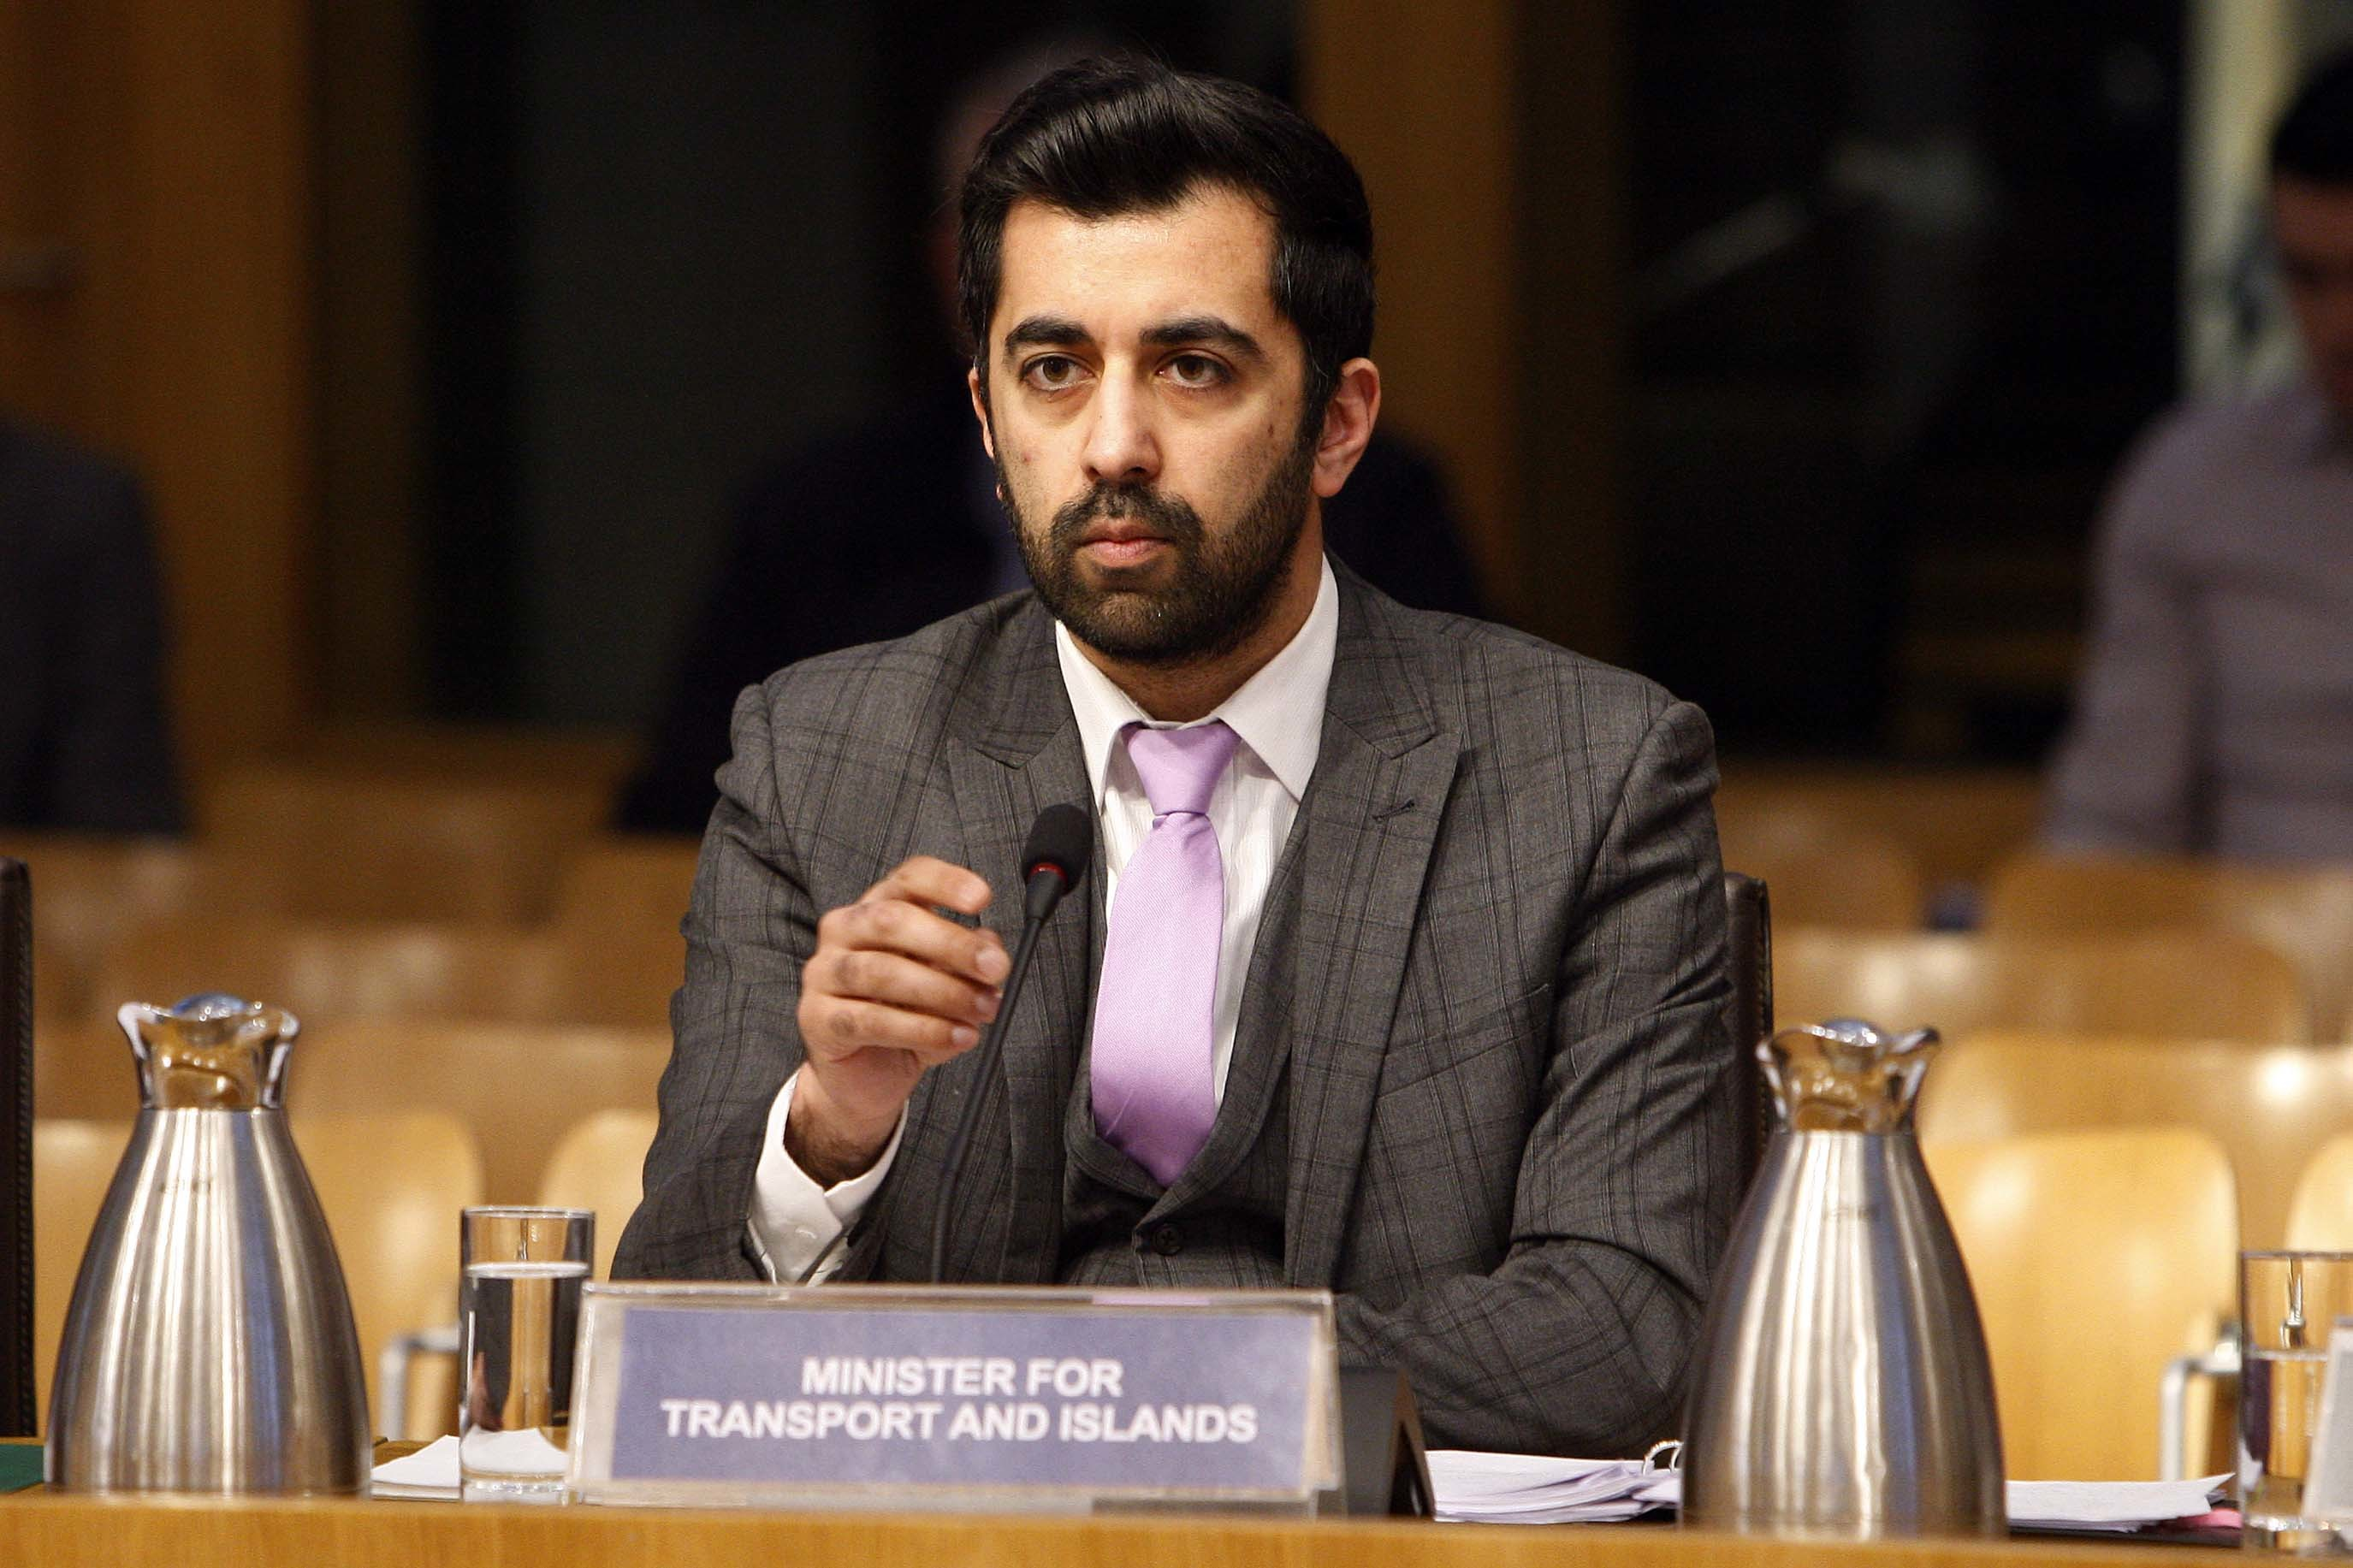 Humza Yousaf (Andrew Cowan/Scottish Parliament)